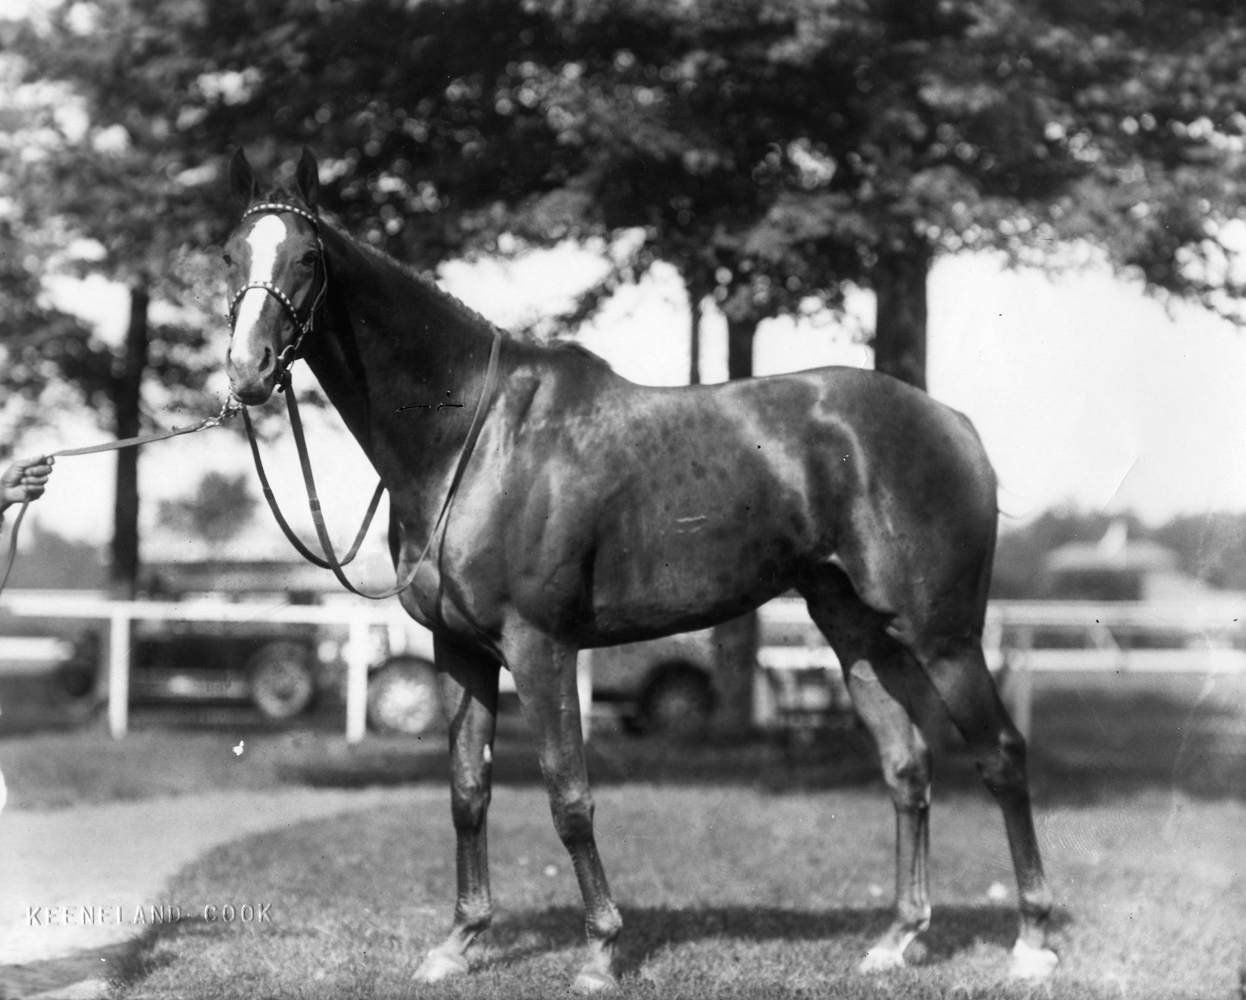 Discovery (Keeneland Library Cook Collection/Museum Collection)